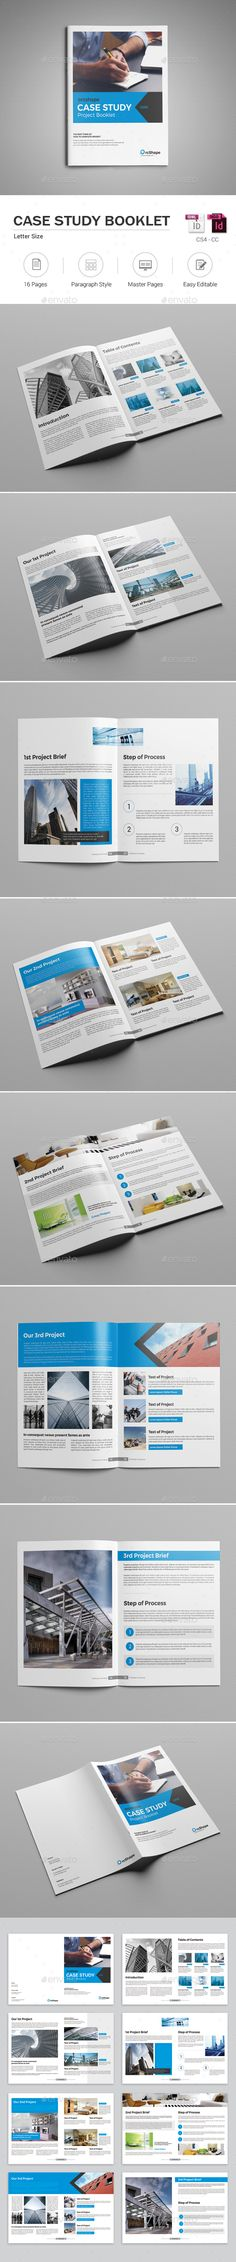 #Case Study Booklet - #Informational #Brochures Download here: https://graphicriver.net/item/case-study-booklet/17712863?ref=alena994